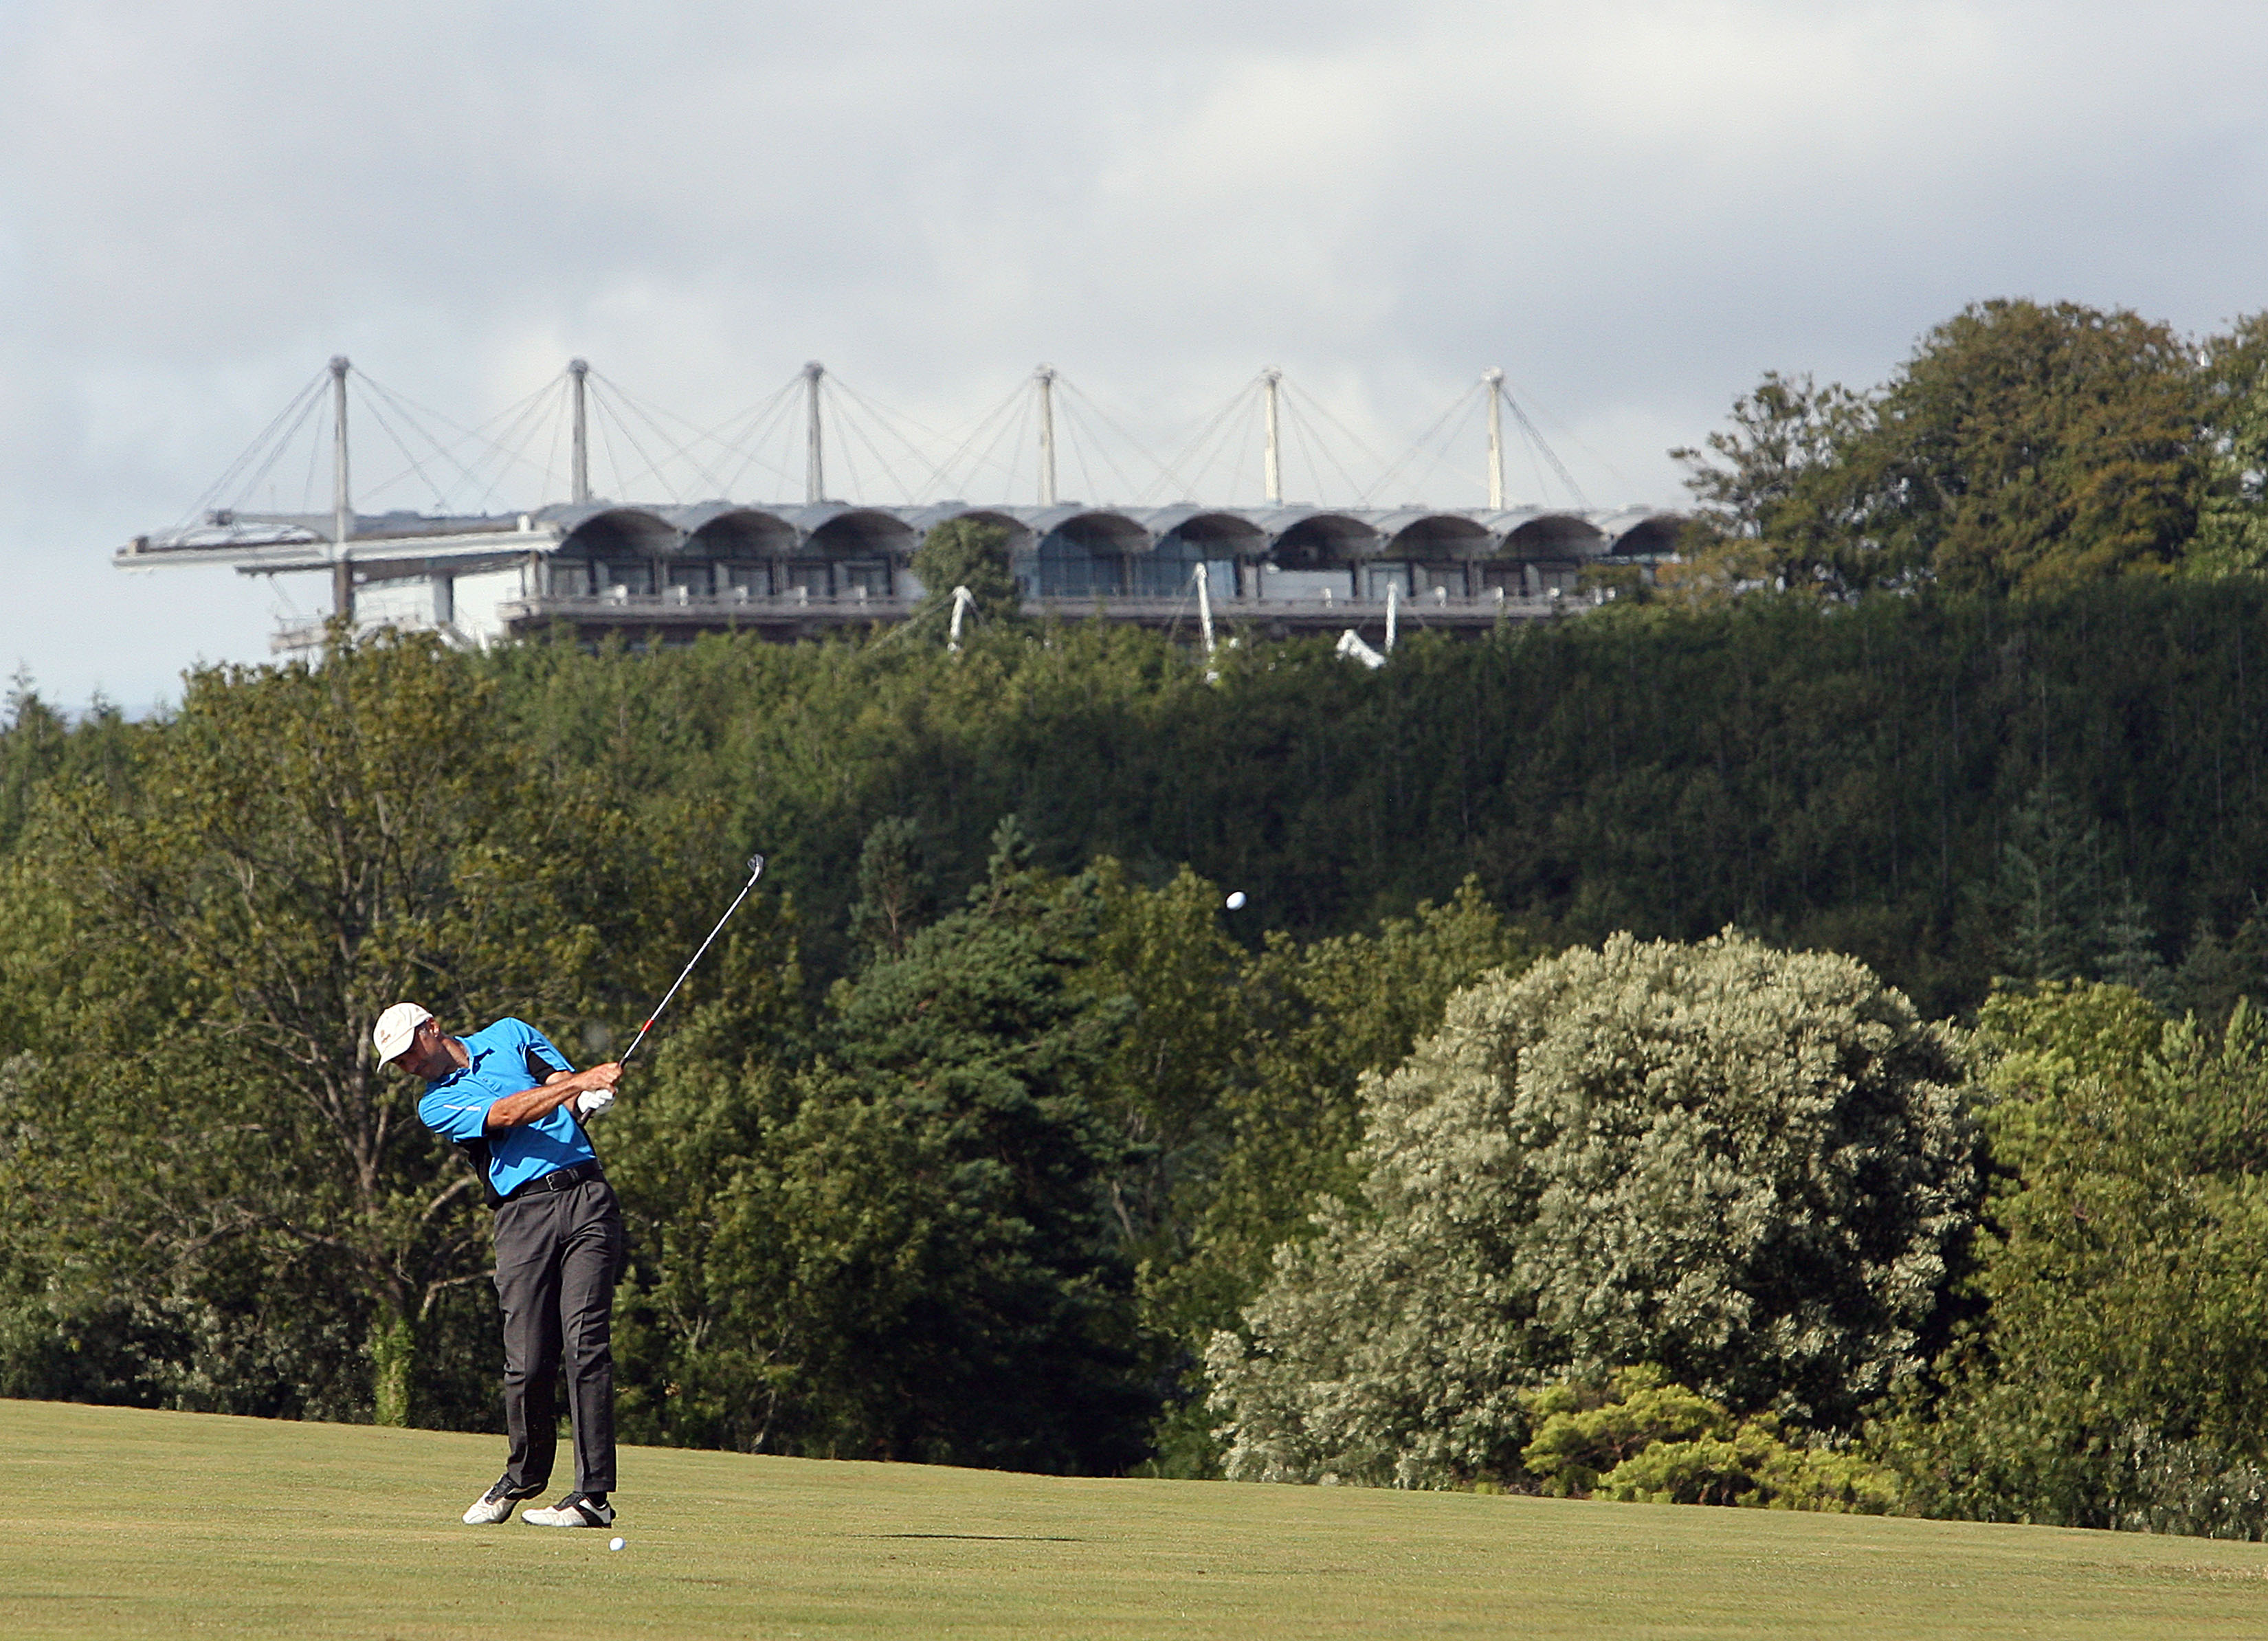 The stands of Goodwood racecourse can be seen on top of the South Downs (Photo: Getty Images)